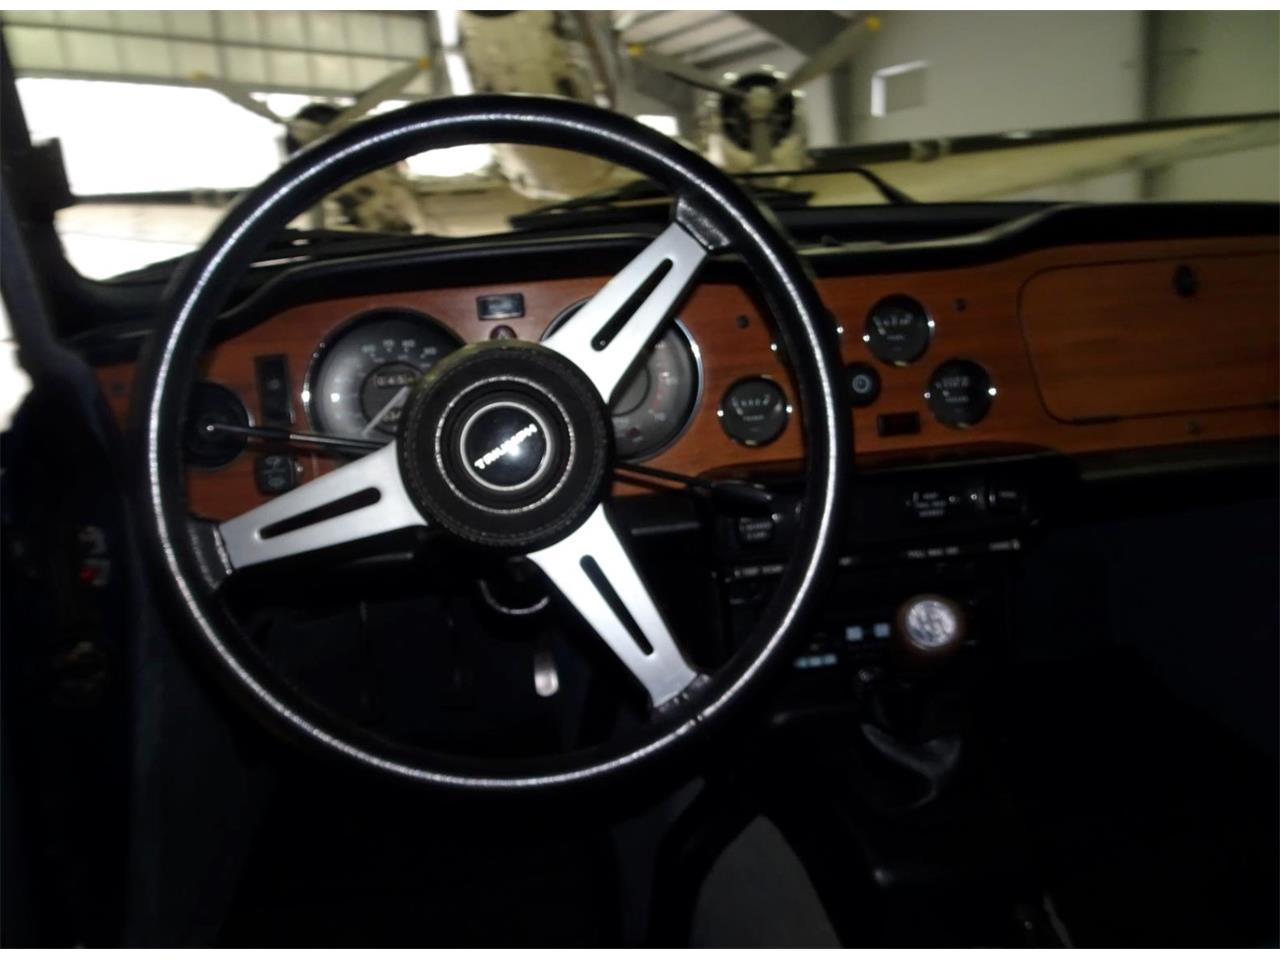 1973 Triumph TR6 for sale in Medford, OR – photo 15